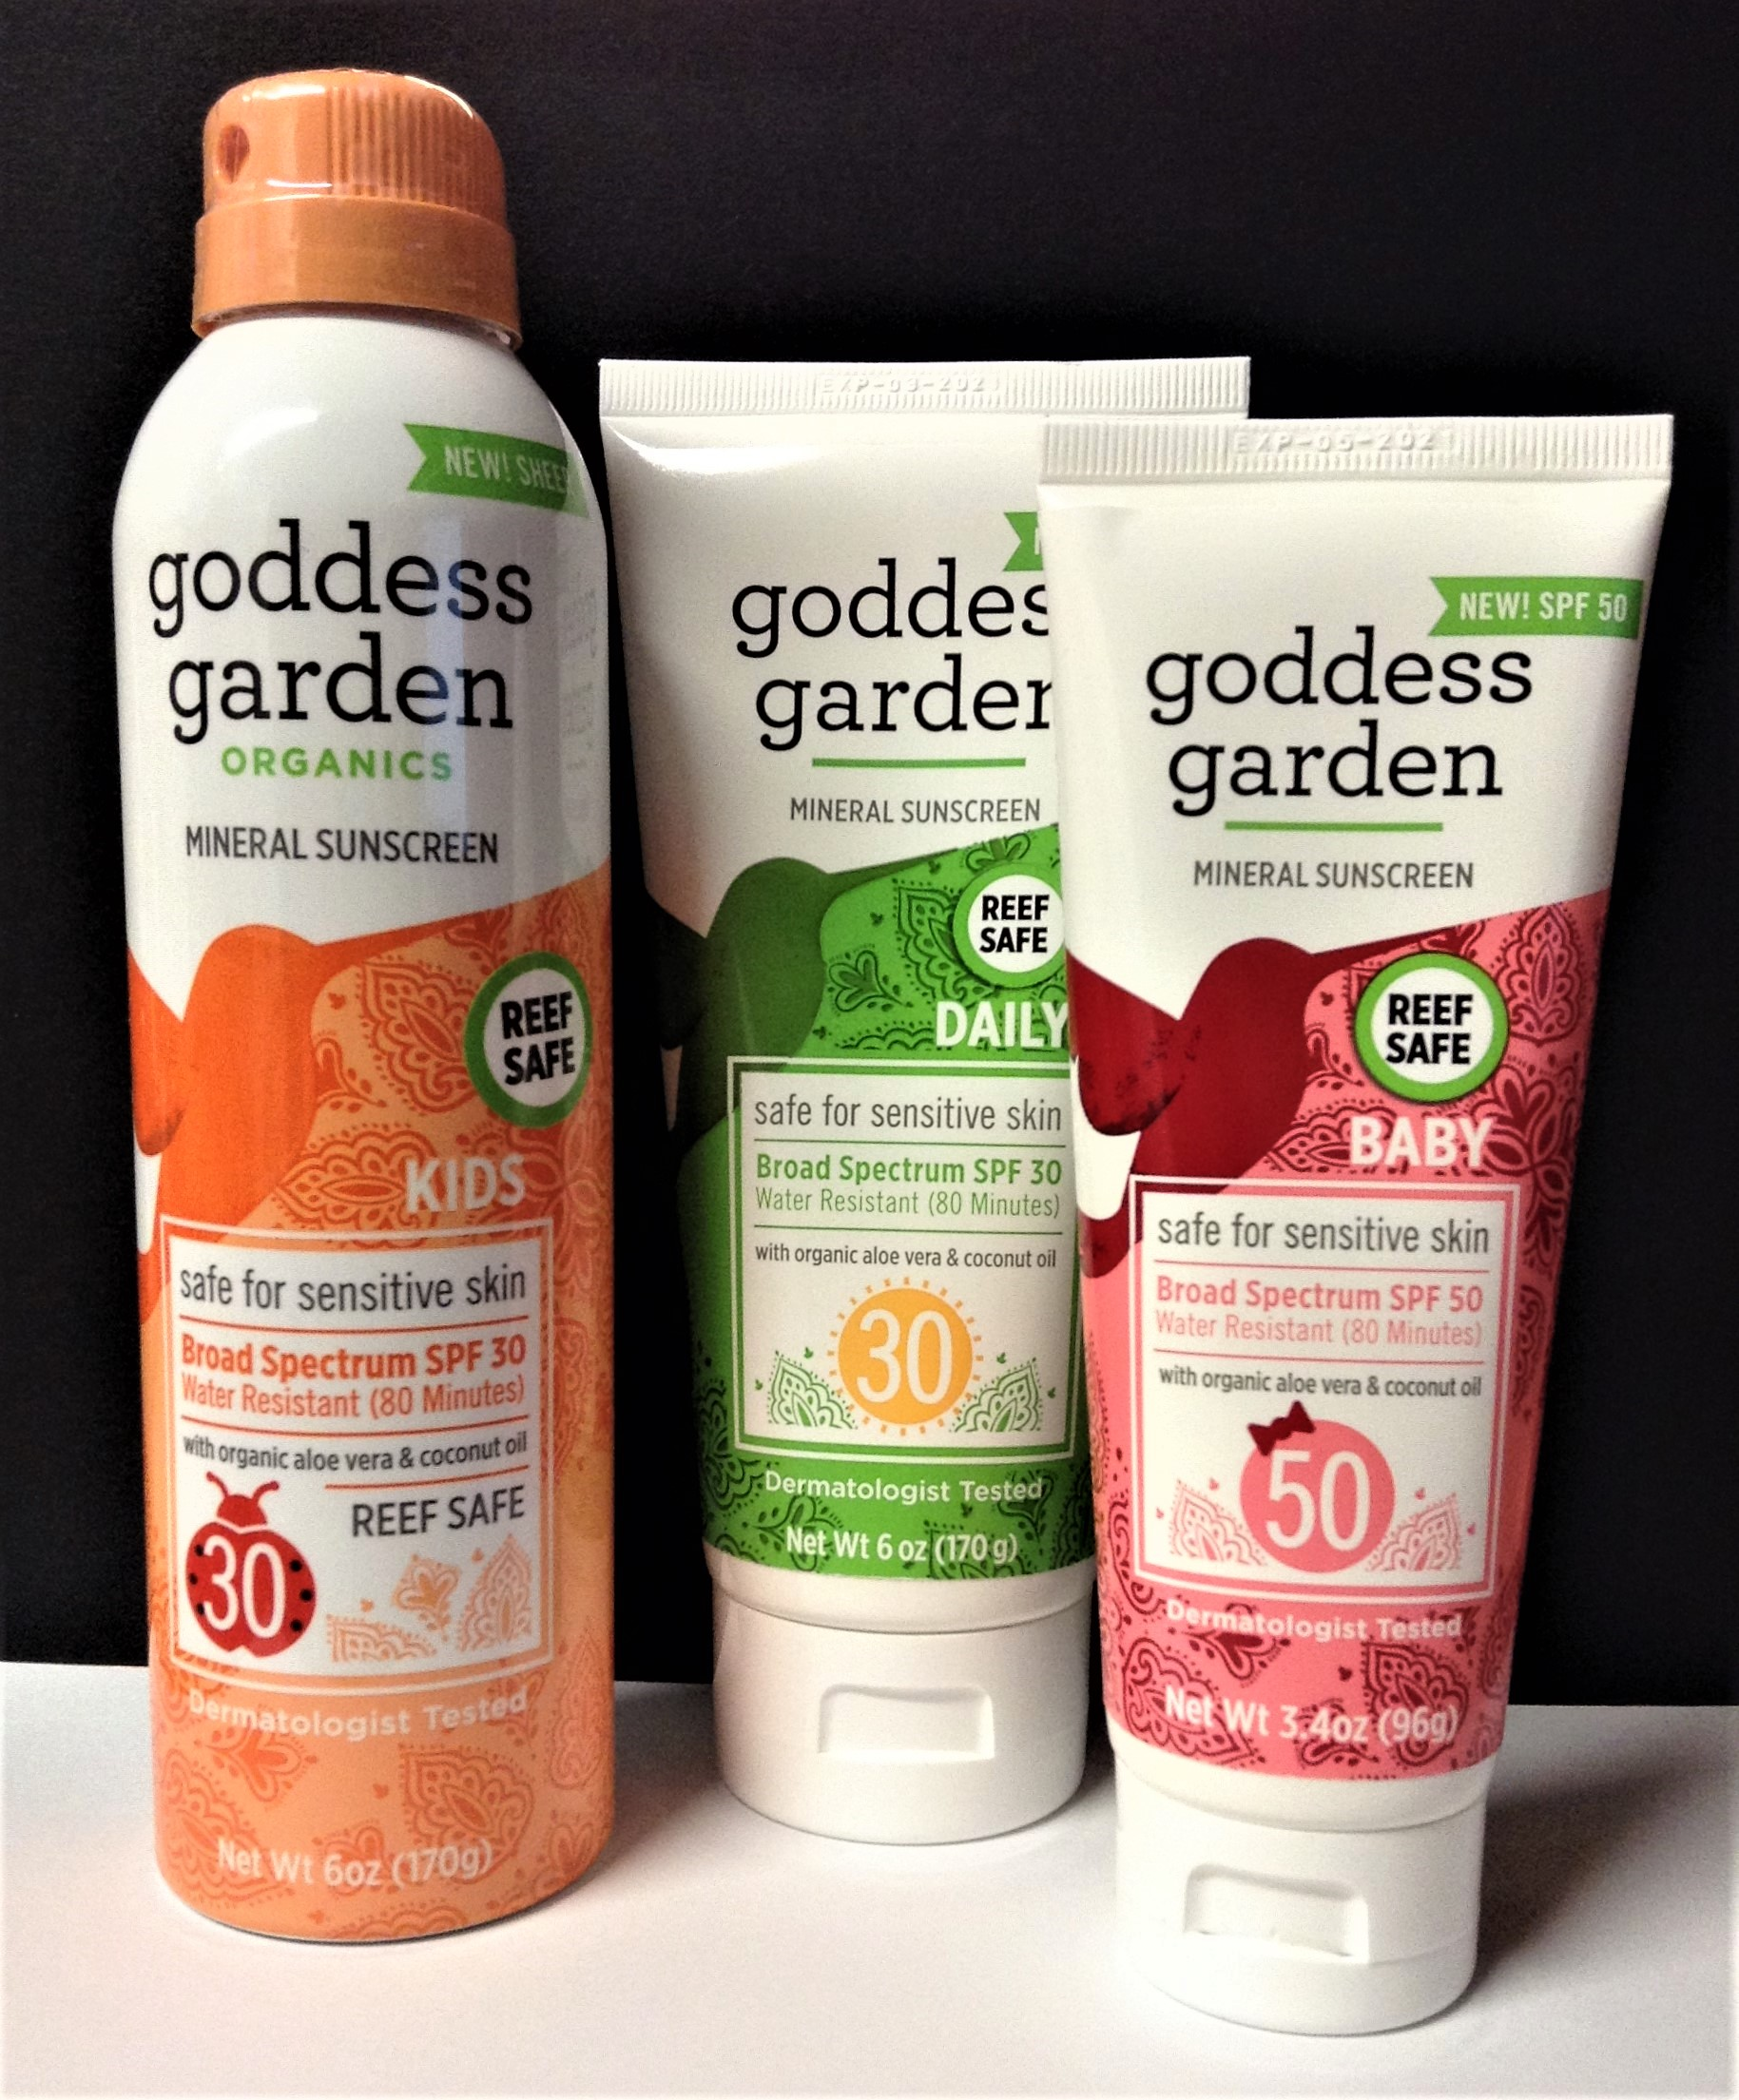 GODDESS GARDEN Mineral Sunscreen for Baby and Beyond!